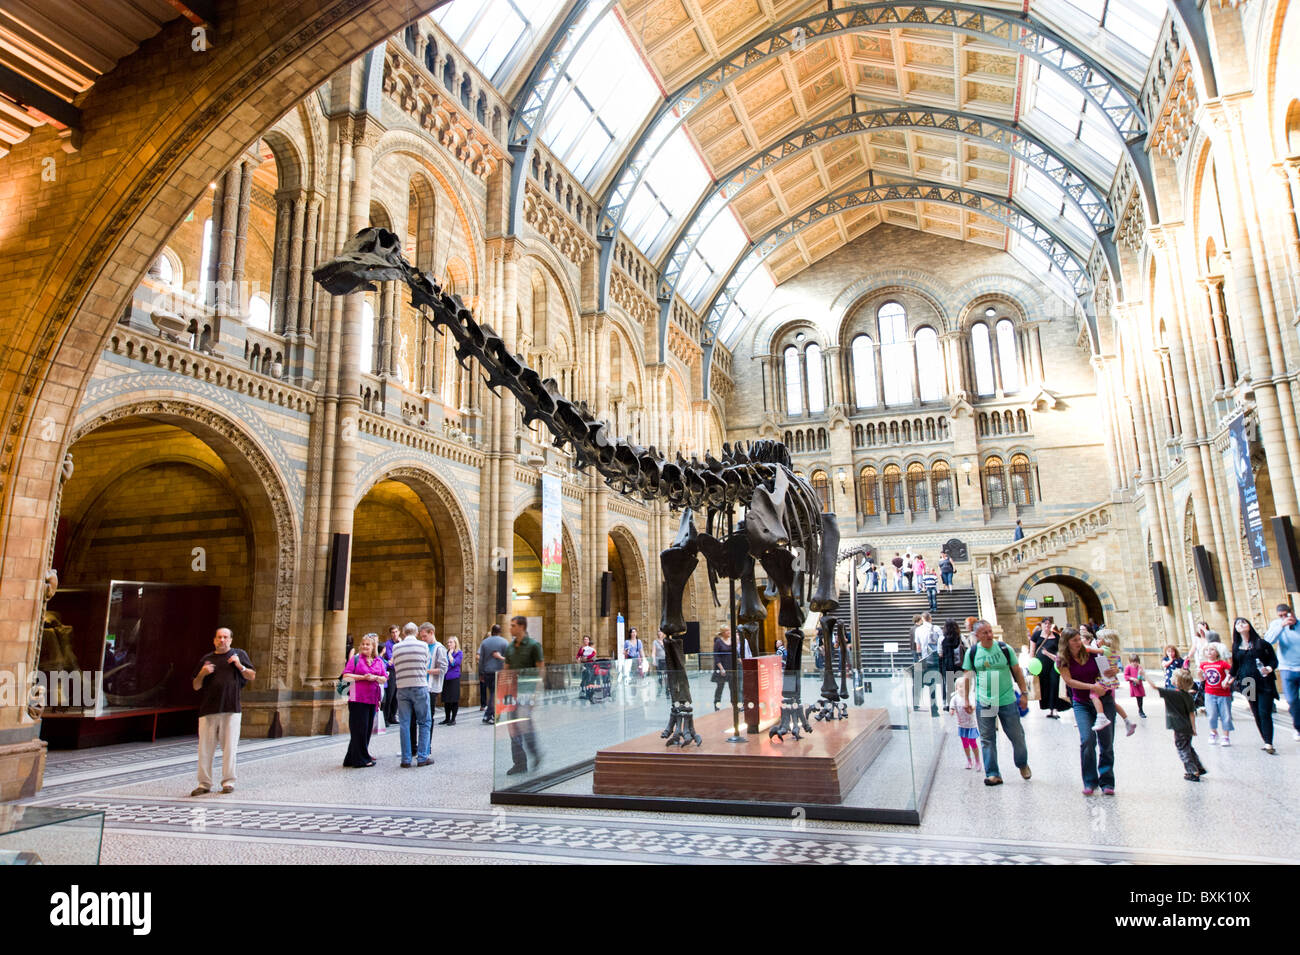 Diplodocus dinosaur at the Natural History Museum, London, England, UK - Stock Image